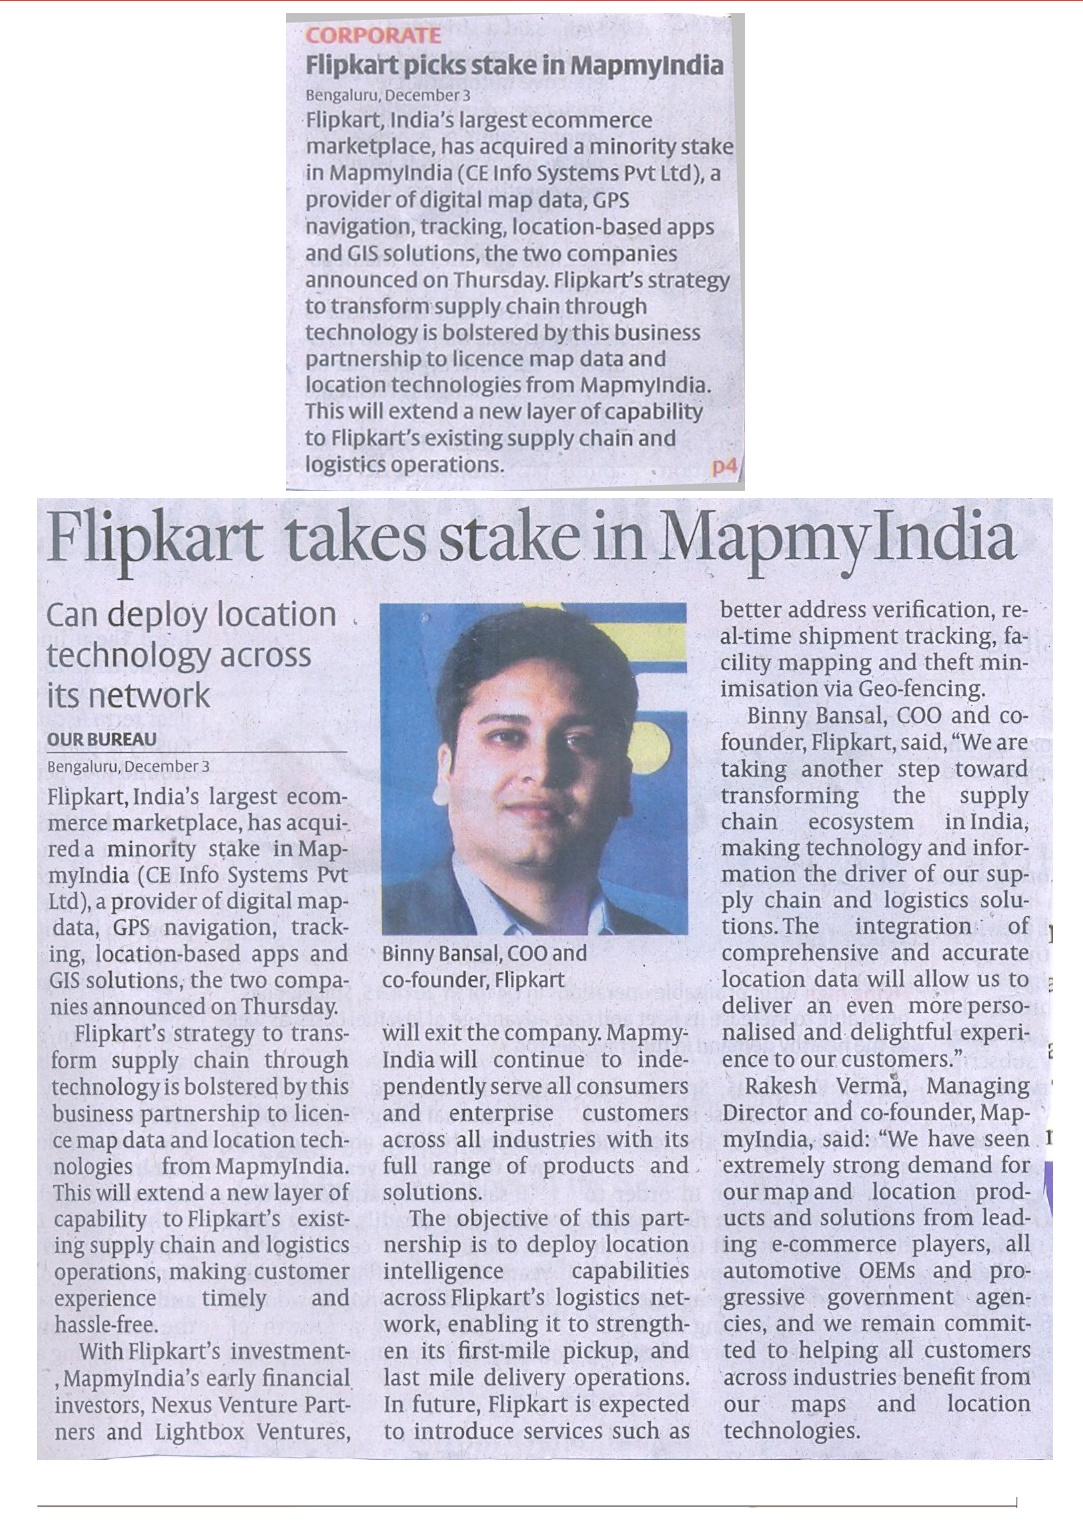 """Flipkart Takes Stake in MapmyIndia"", The Hindu Business Line - December 4, 2015"